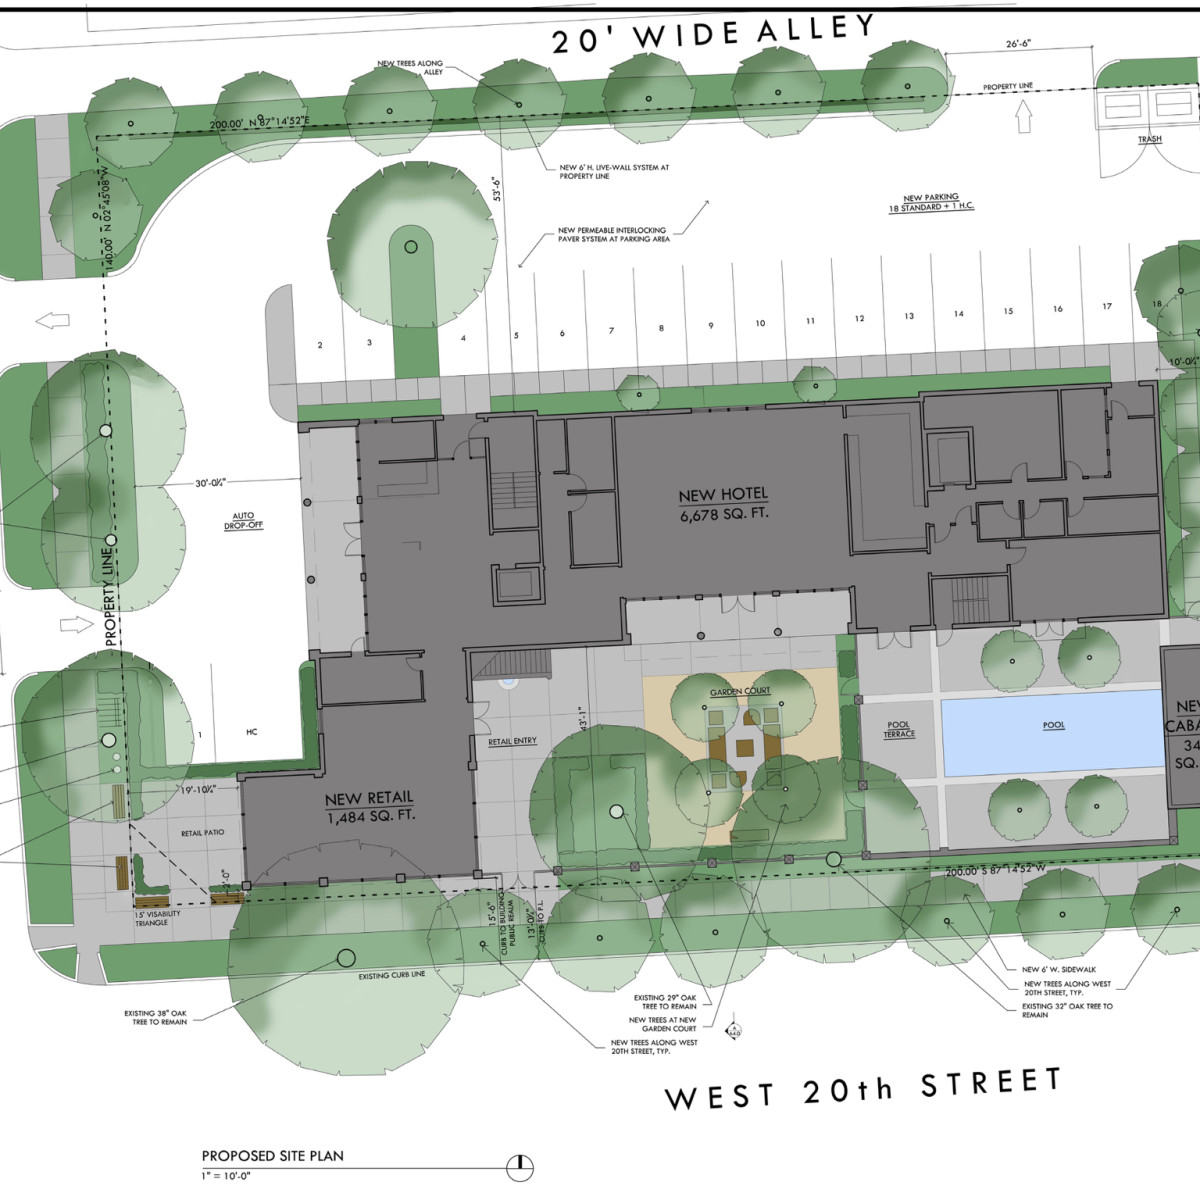 Maison Robert Heights hotel site plan